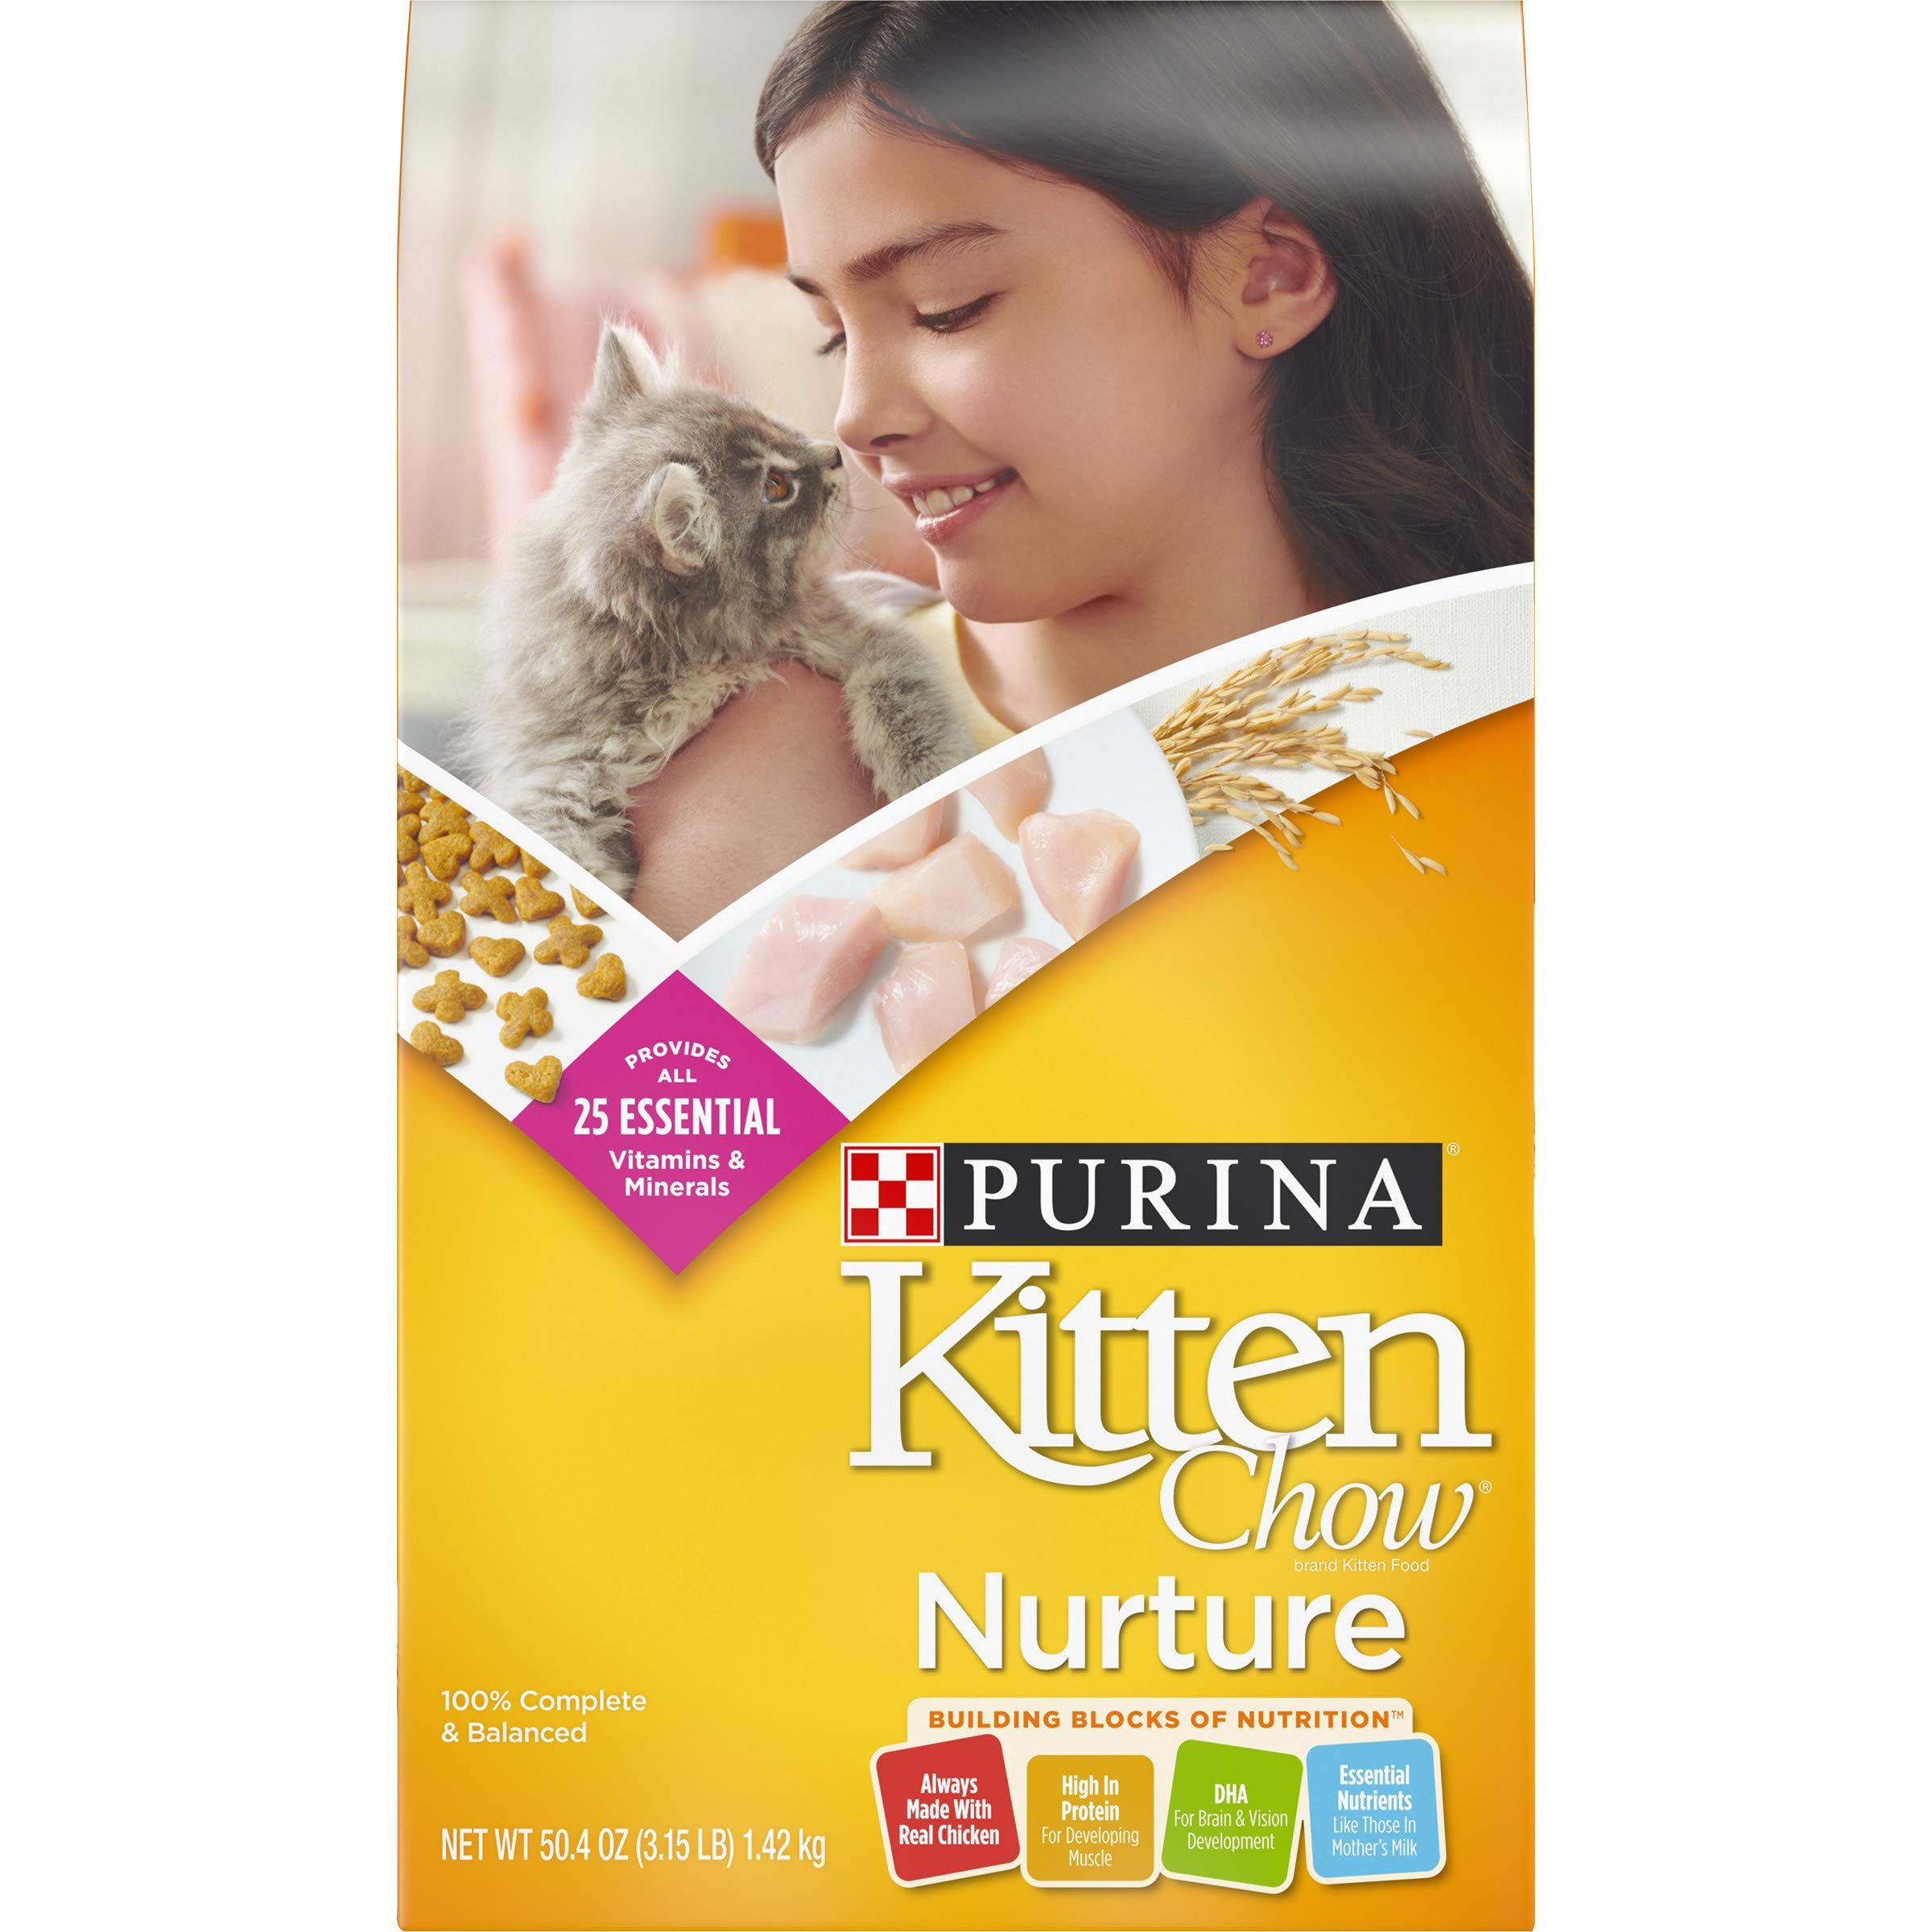 Purina Kitten Chow Nurture Kitten Dry Cat Food In 2020 Dry Cat Food Purina Kitten Food